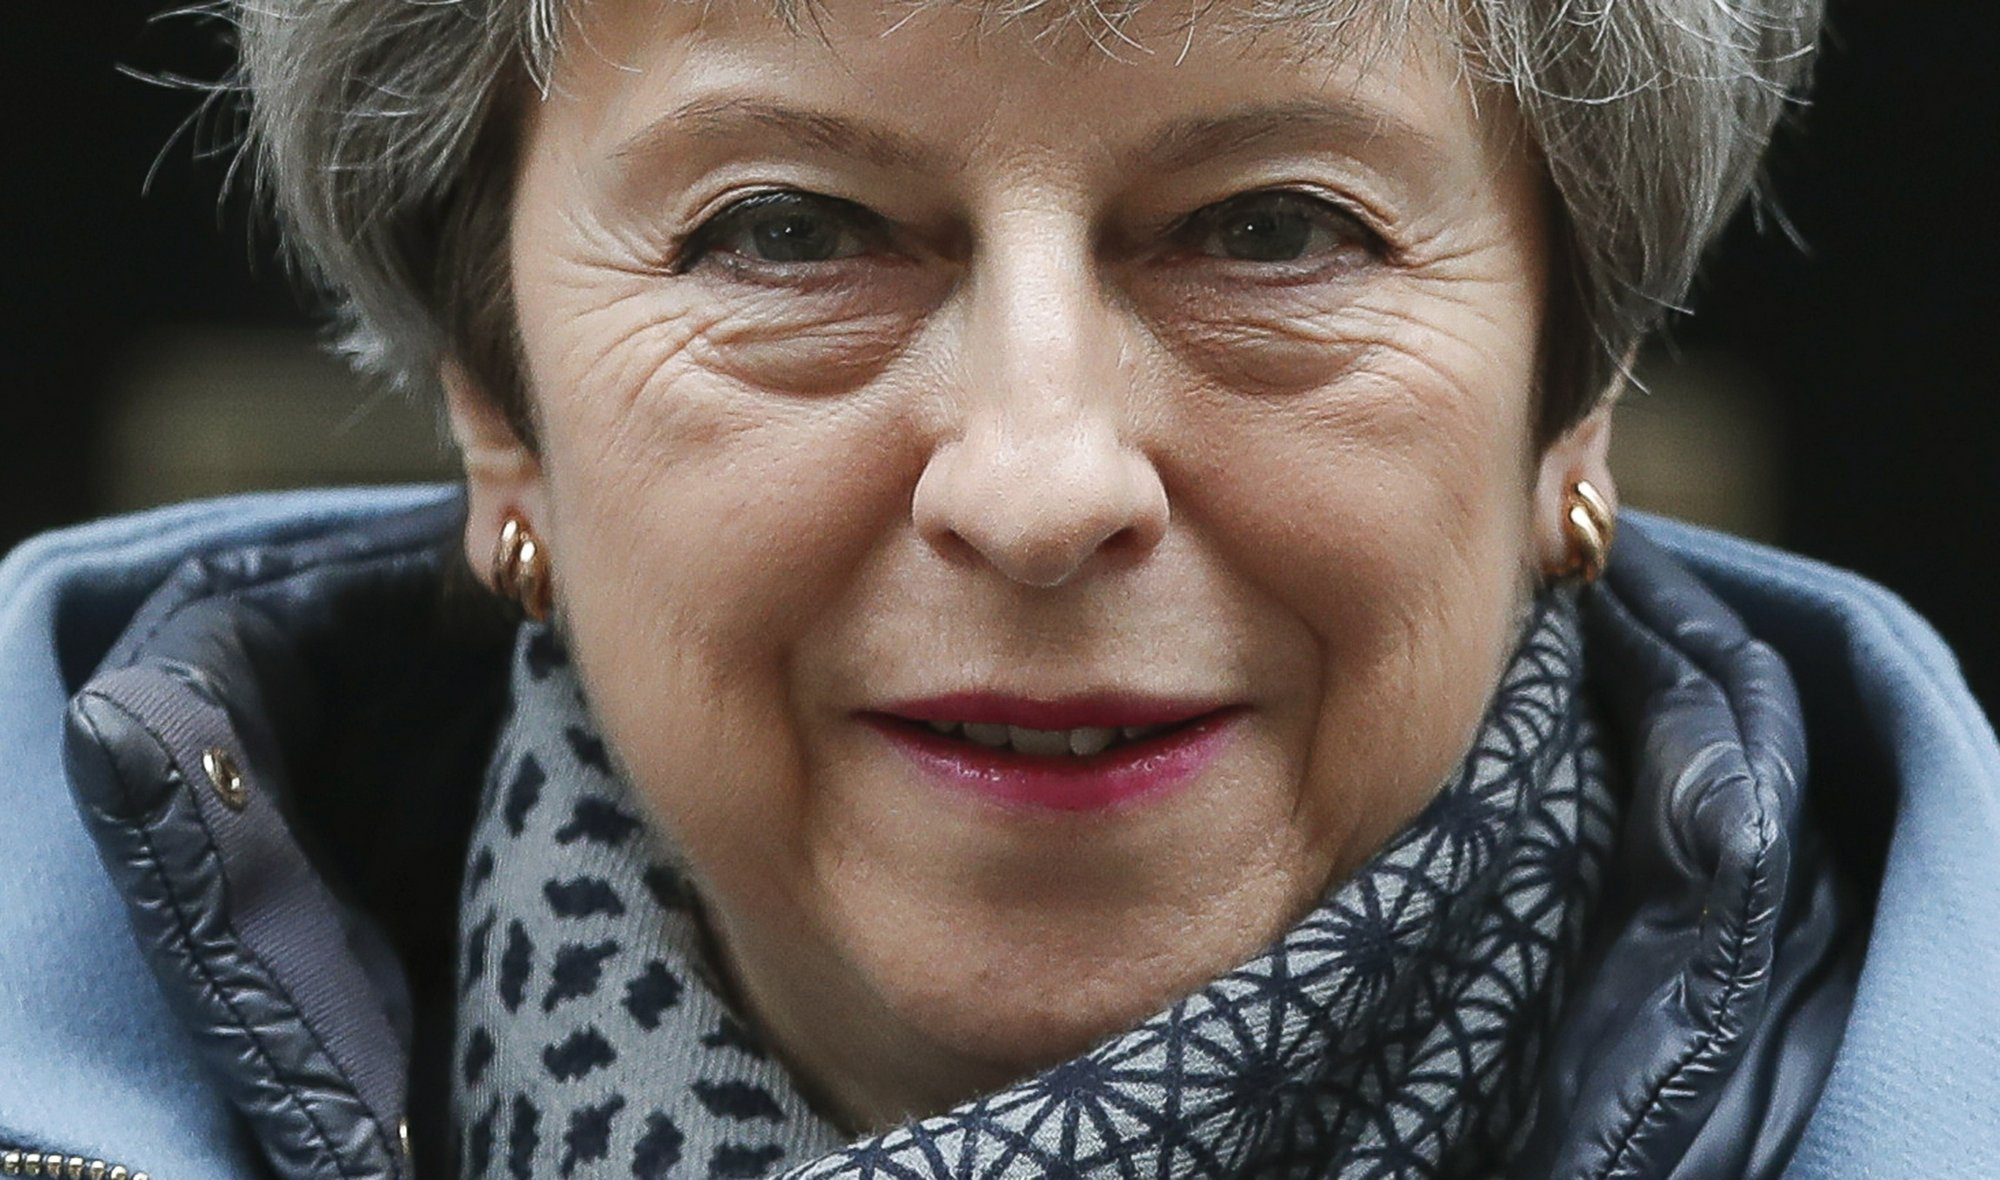 UK's May concedes Brexit deal won't pass 'in near future'